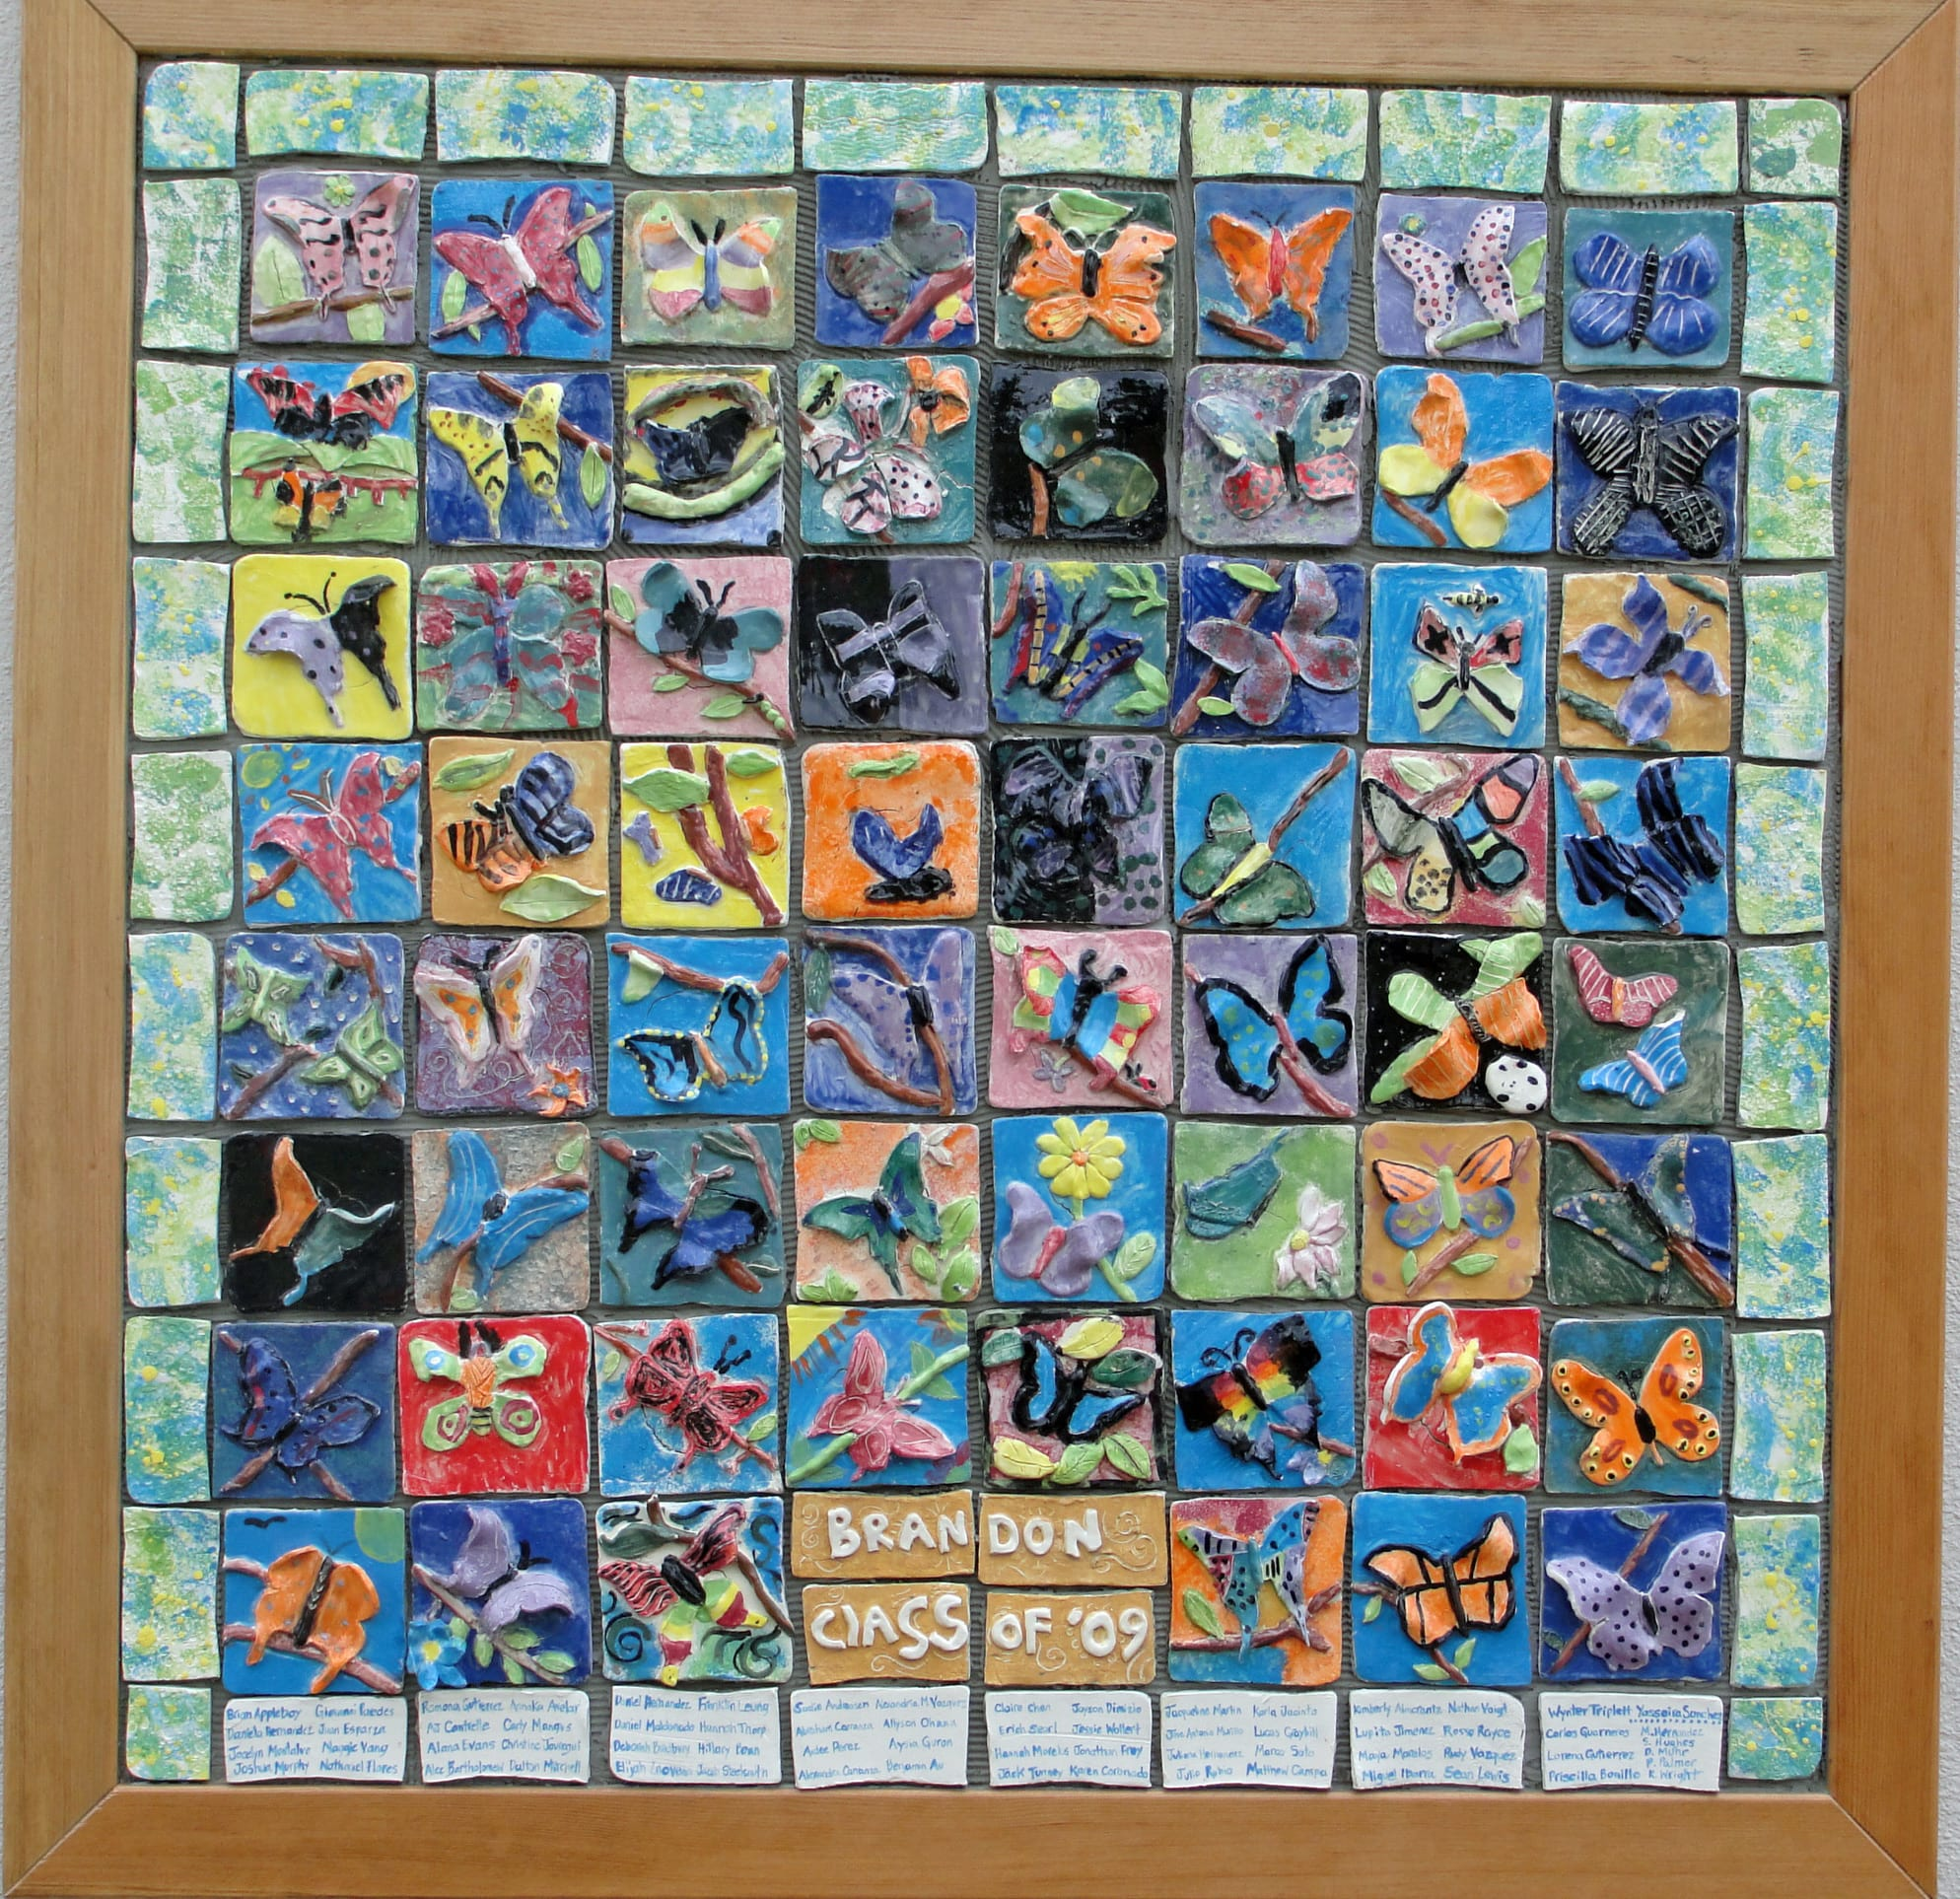 Butterfly ceramic tile mural art project fro kids | Deep Space Sparkle